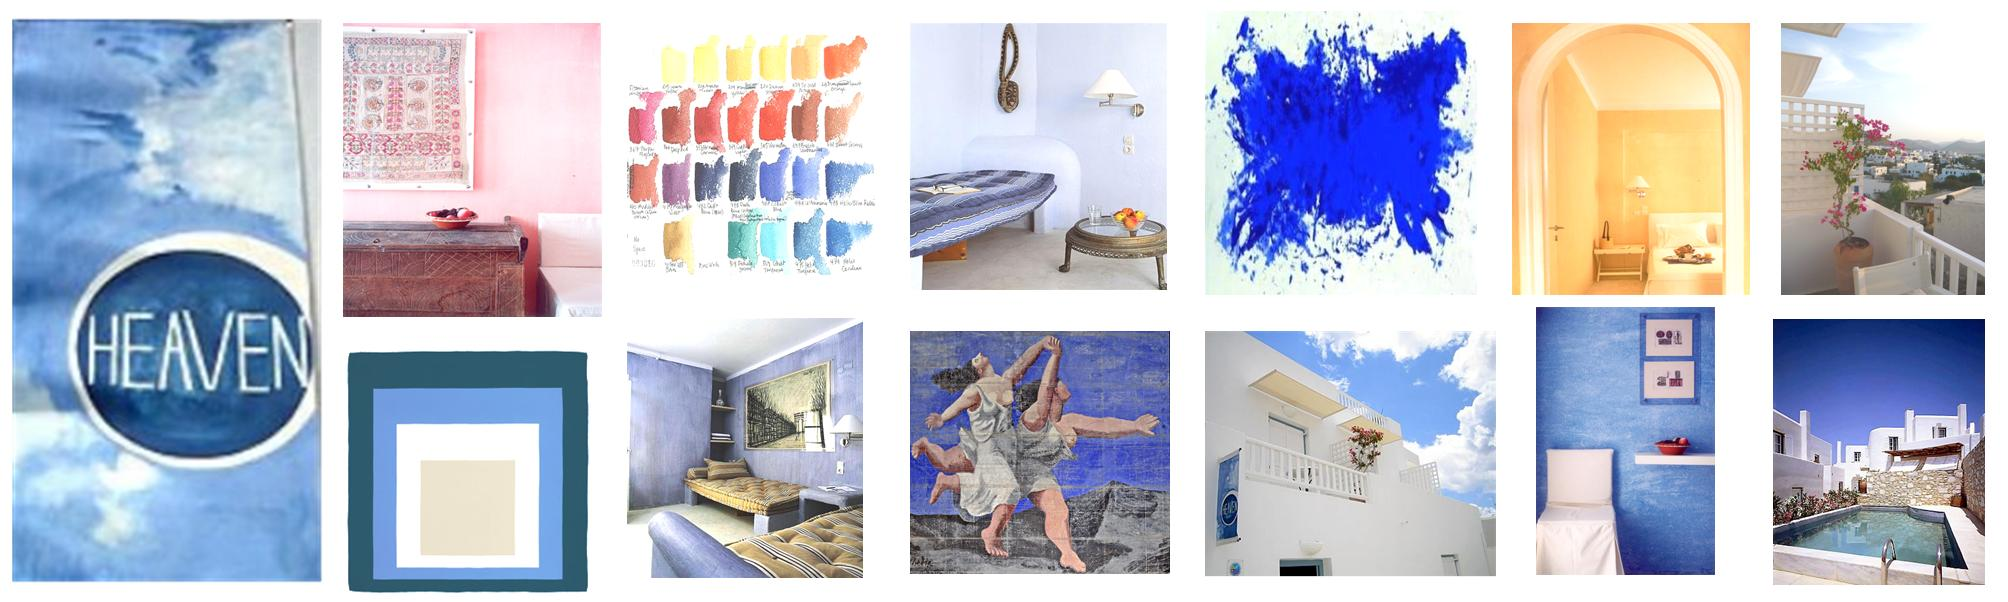 Picture Albums of our Heavenly Hotel in Naoussa Paros